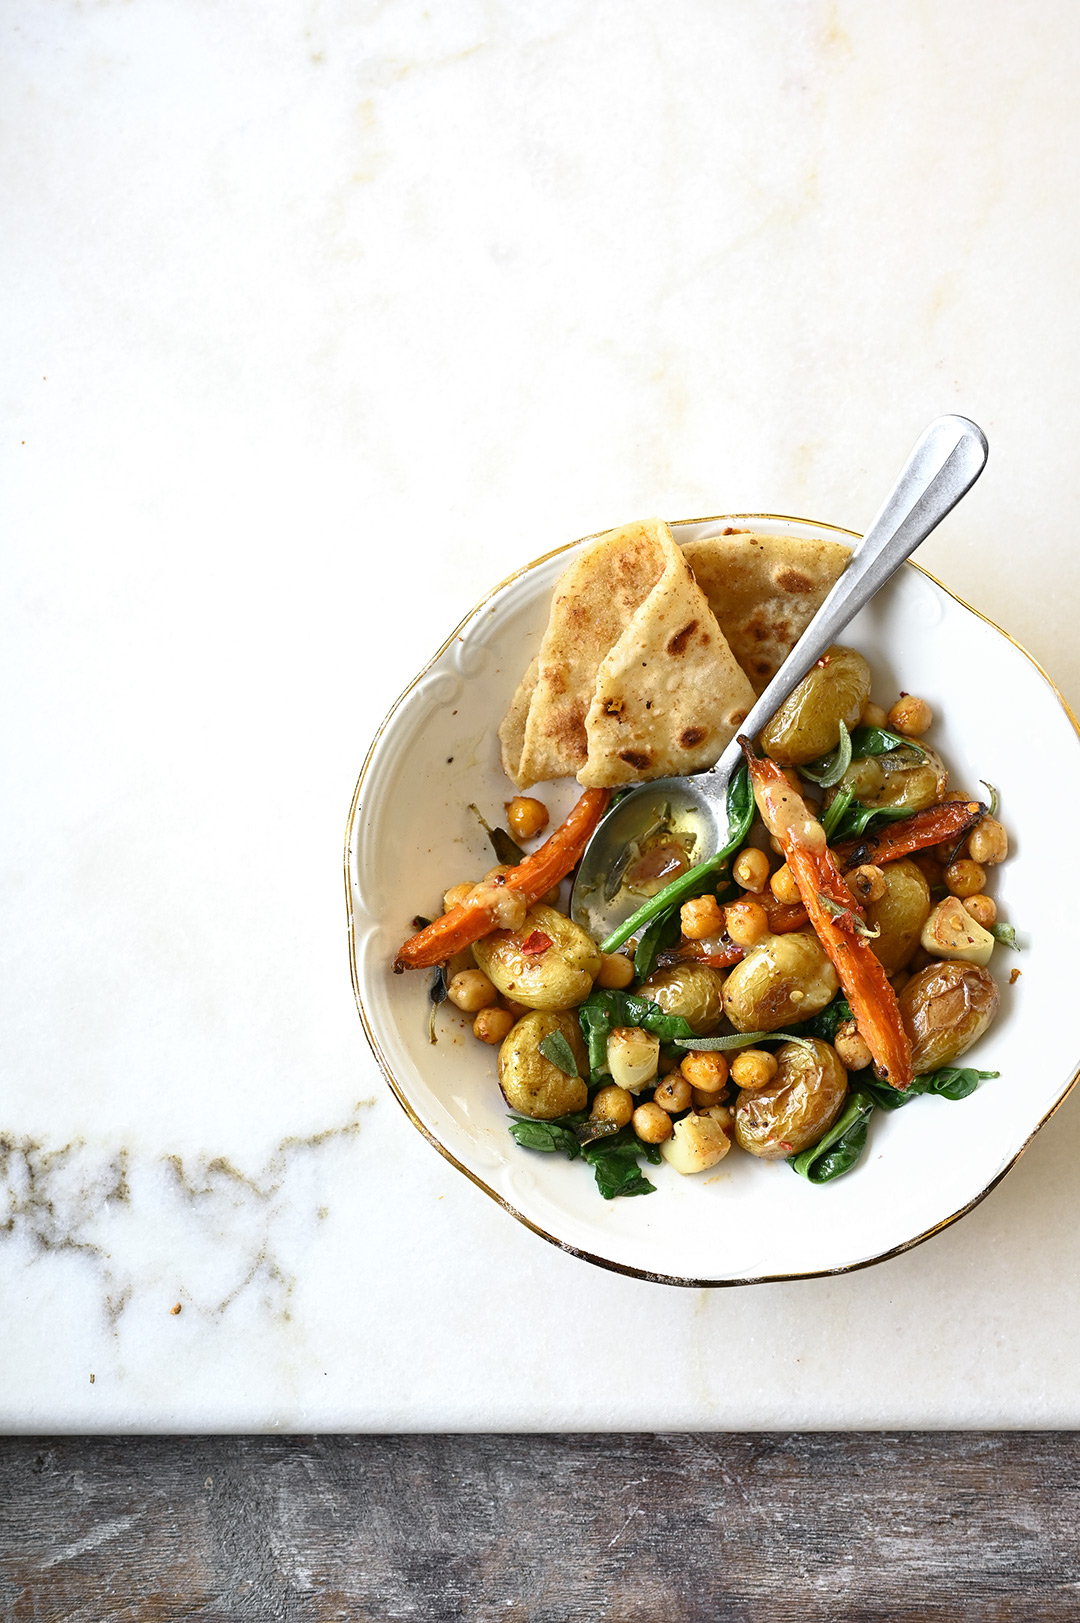 serving dumplings | Easy roasted potato and crunchy chickpea salad